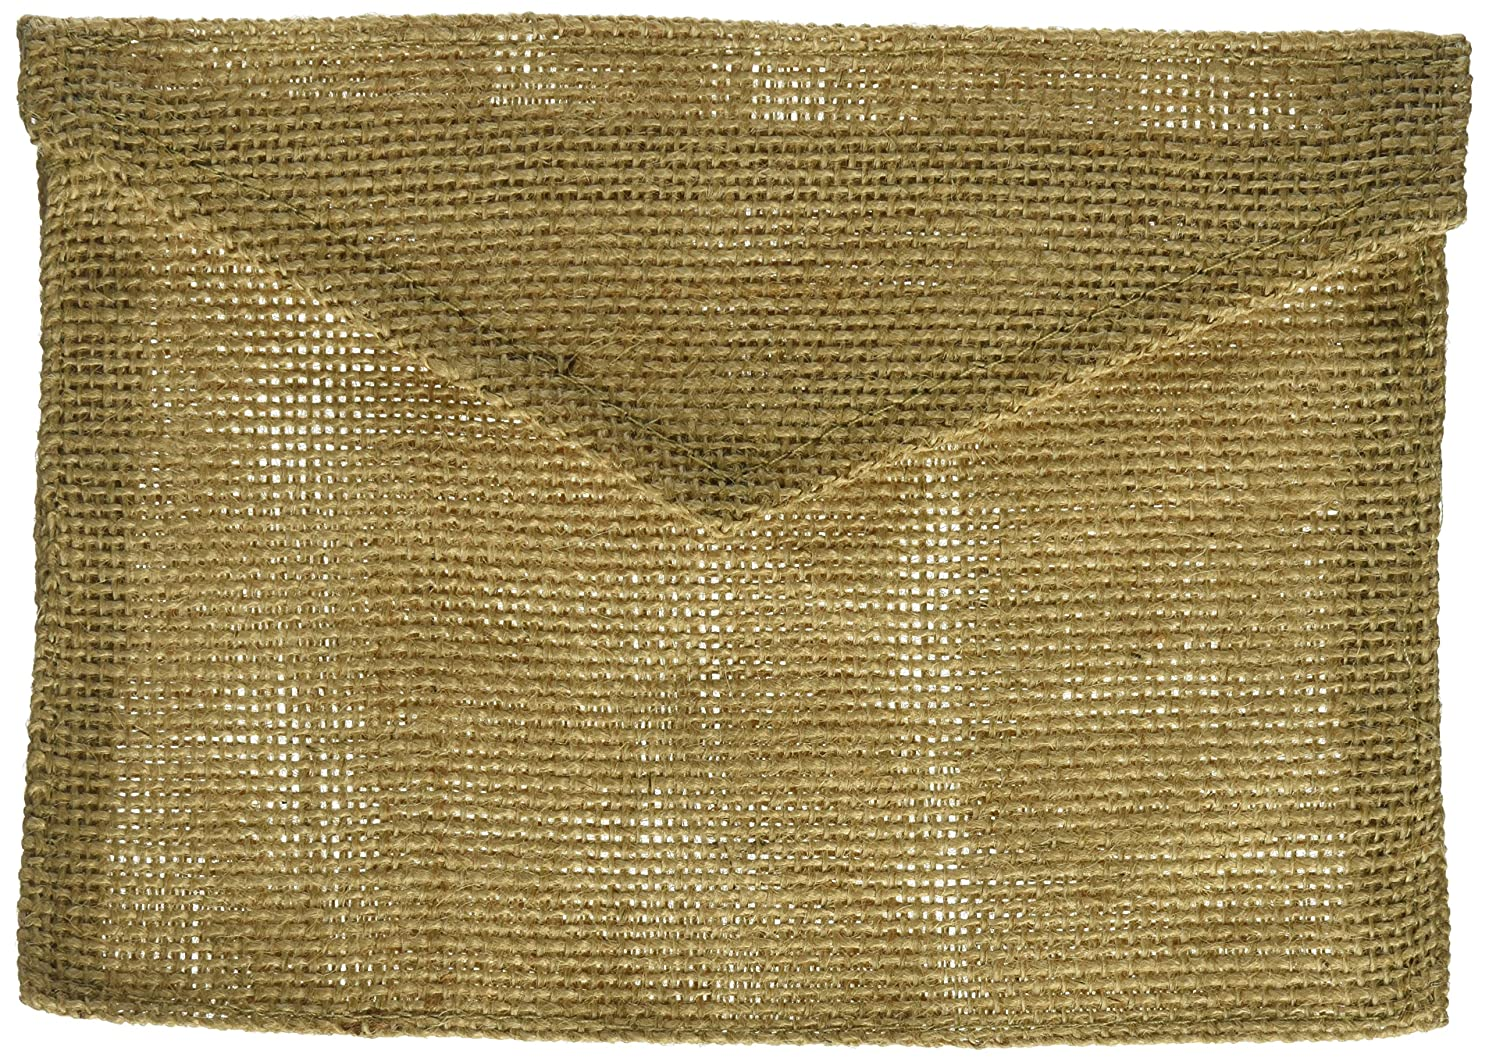 Canvas Corp Burlap Envelope, 5-Inch by 7-Inch, Natural